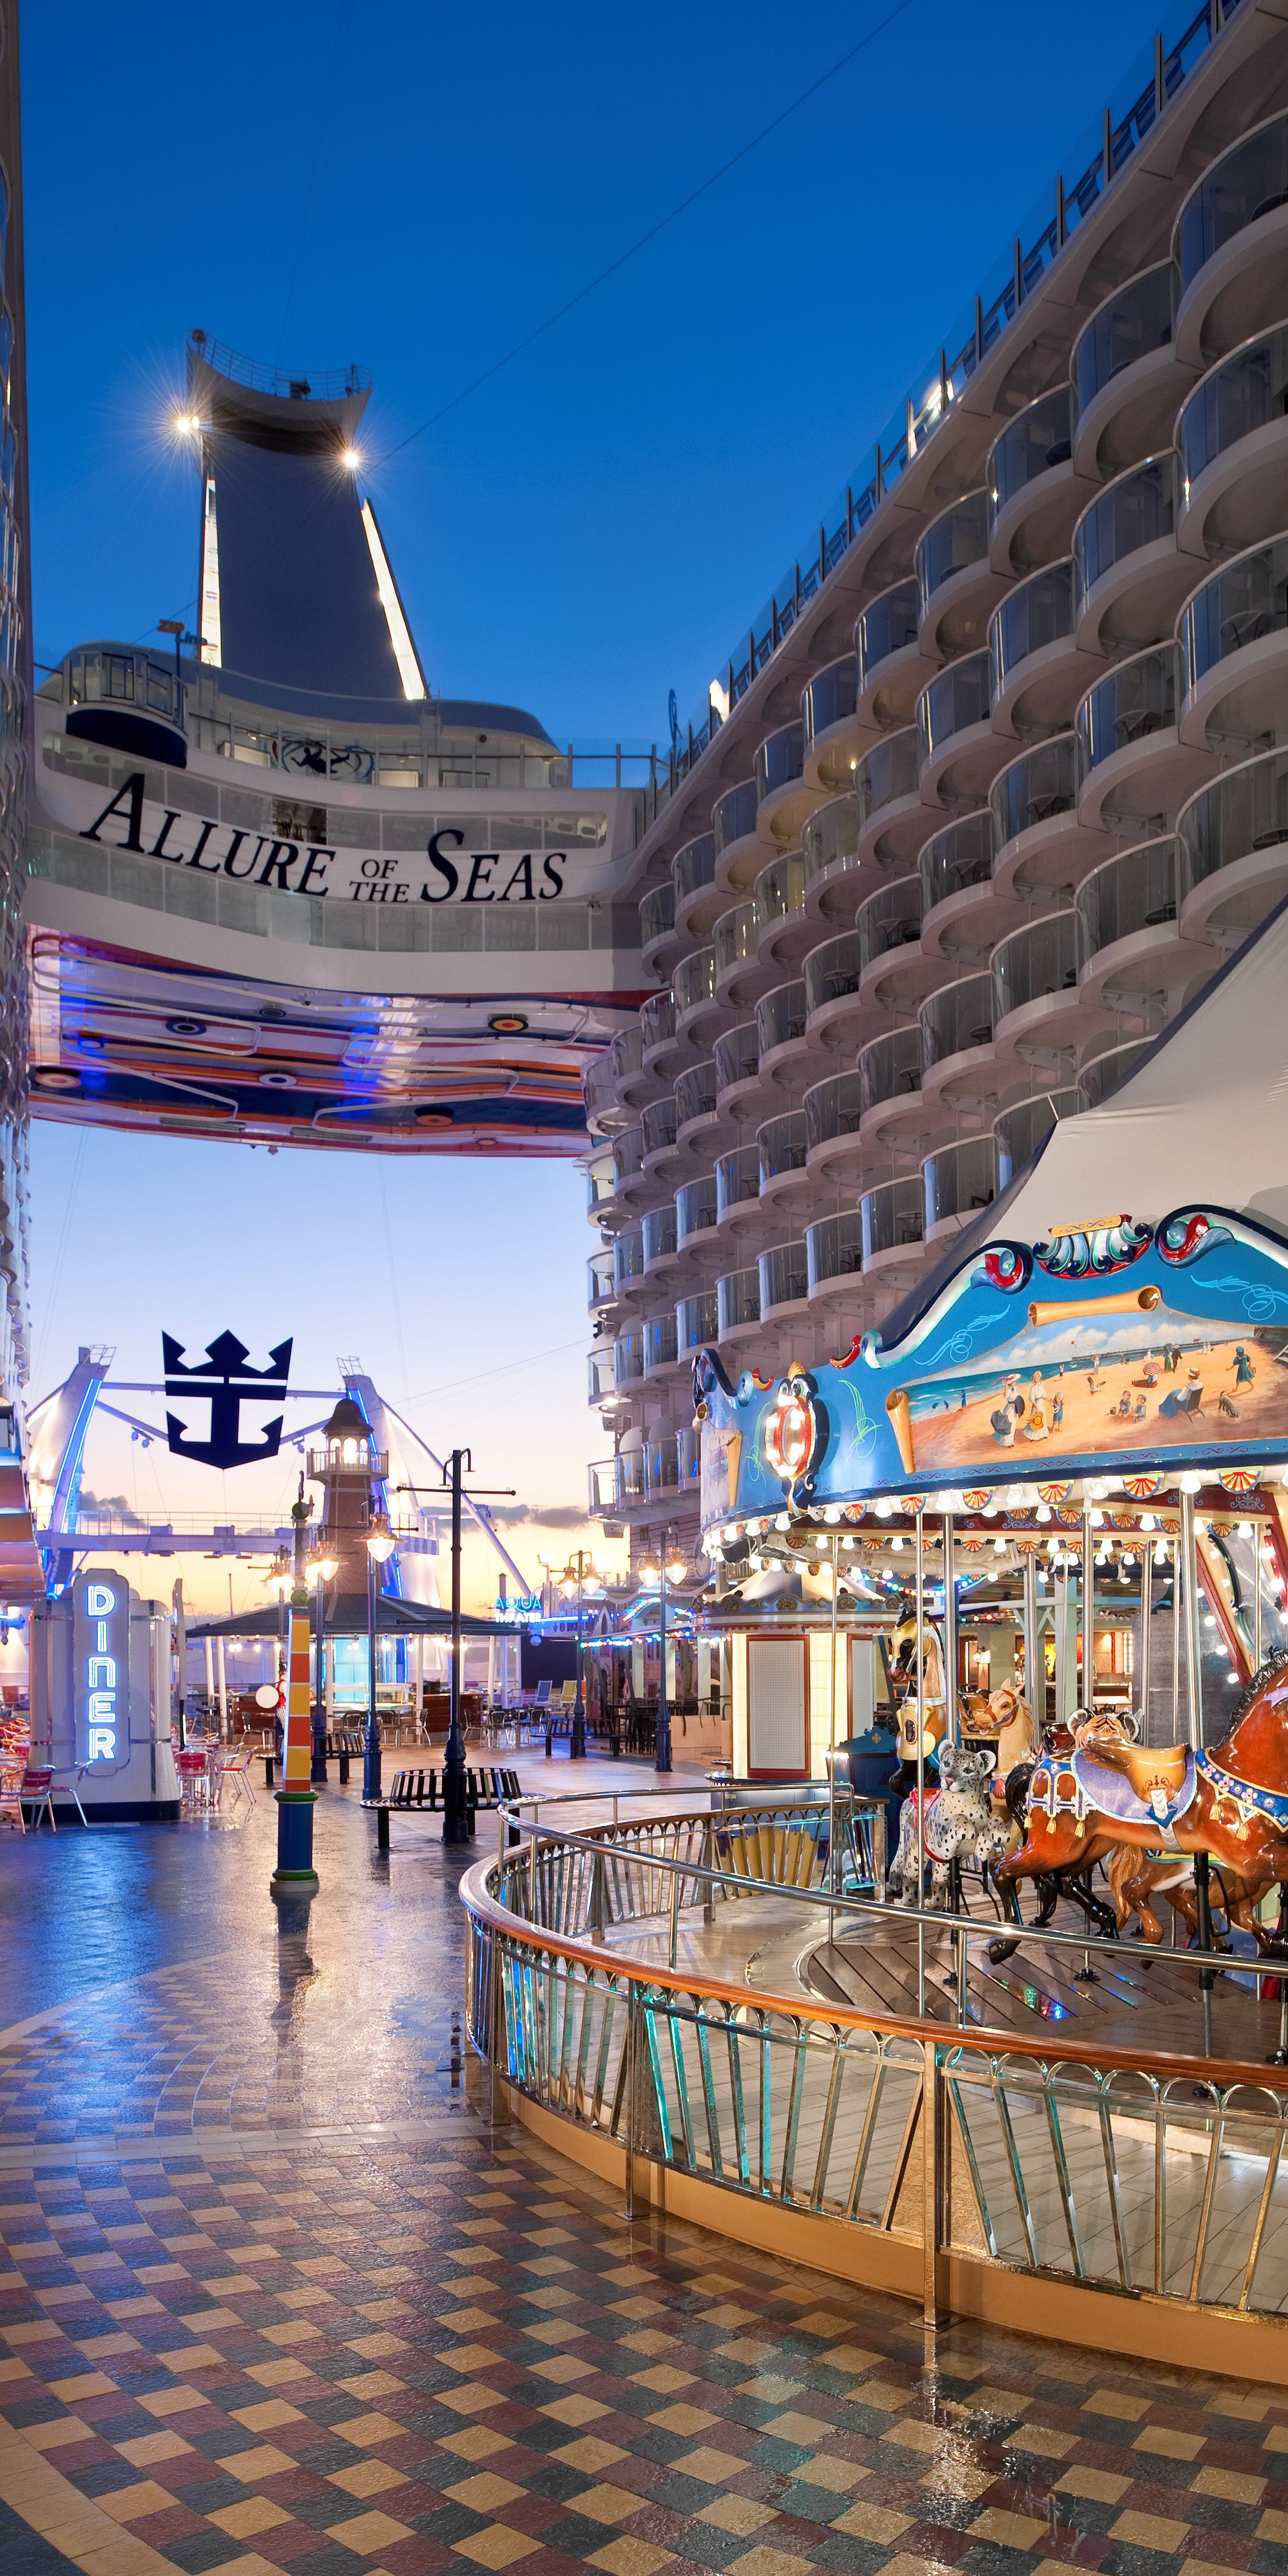 Allure Of The Seas Immerse Yourself In The Boardwalk Neighborhood Of This Oasis Class Ship Where Y Royal Caribbean Cruise Ship Cruise Travel Cruise Vacation